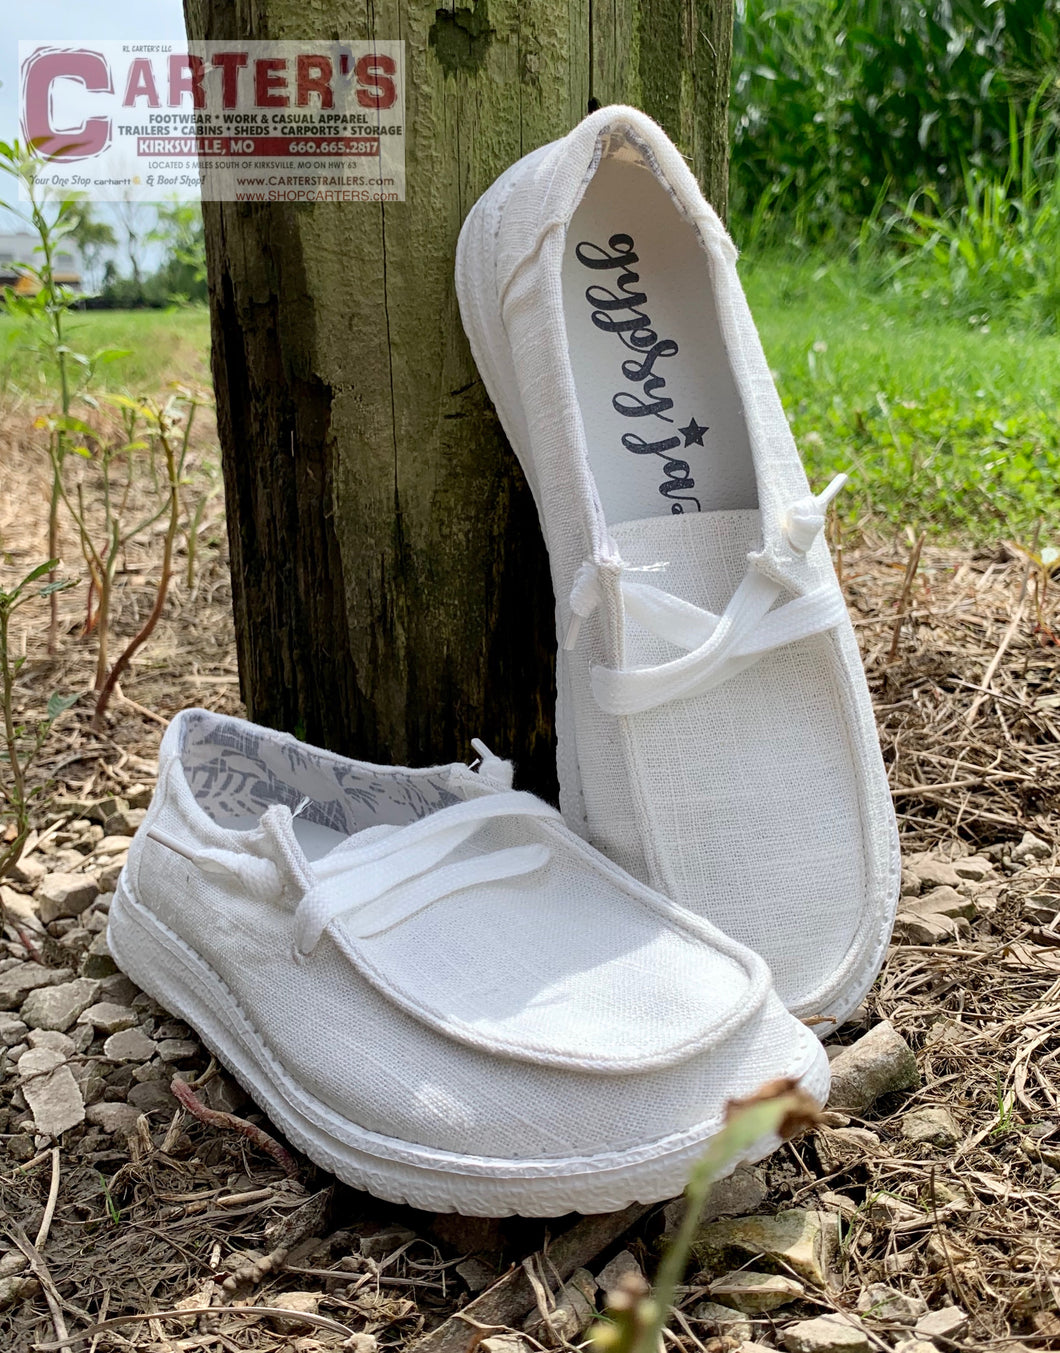 GYPSY JAZZ WHITE HOLLY SNEAKERS